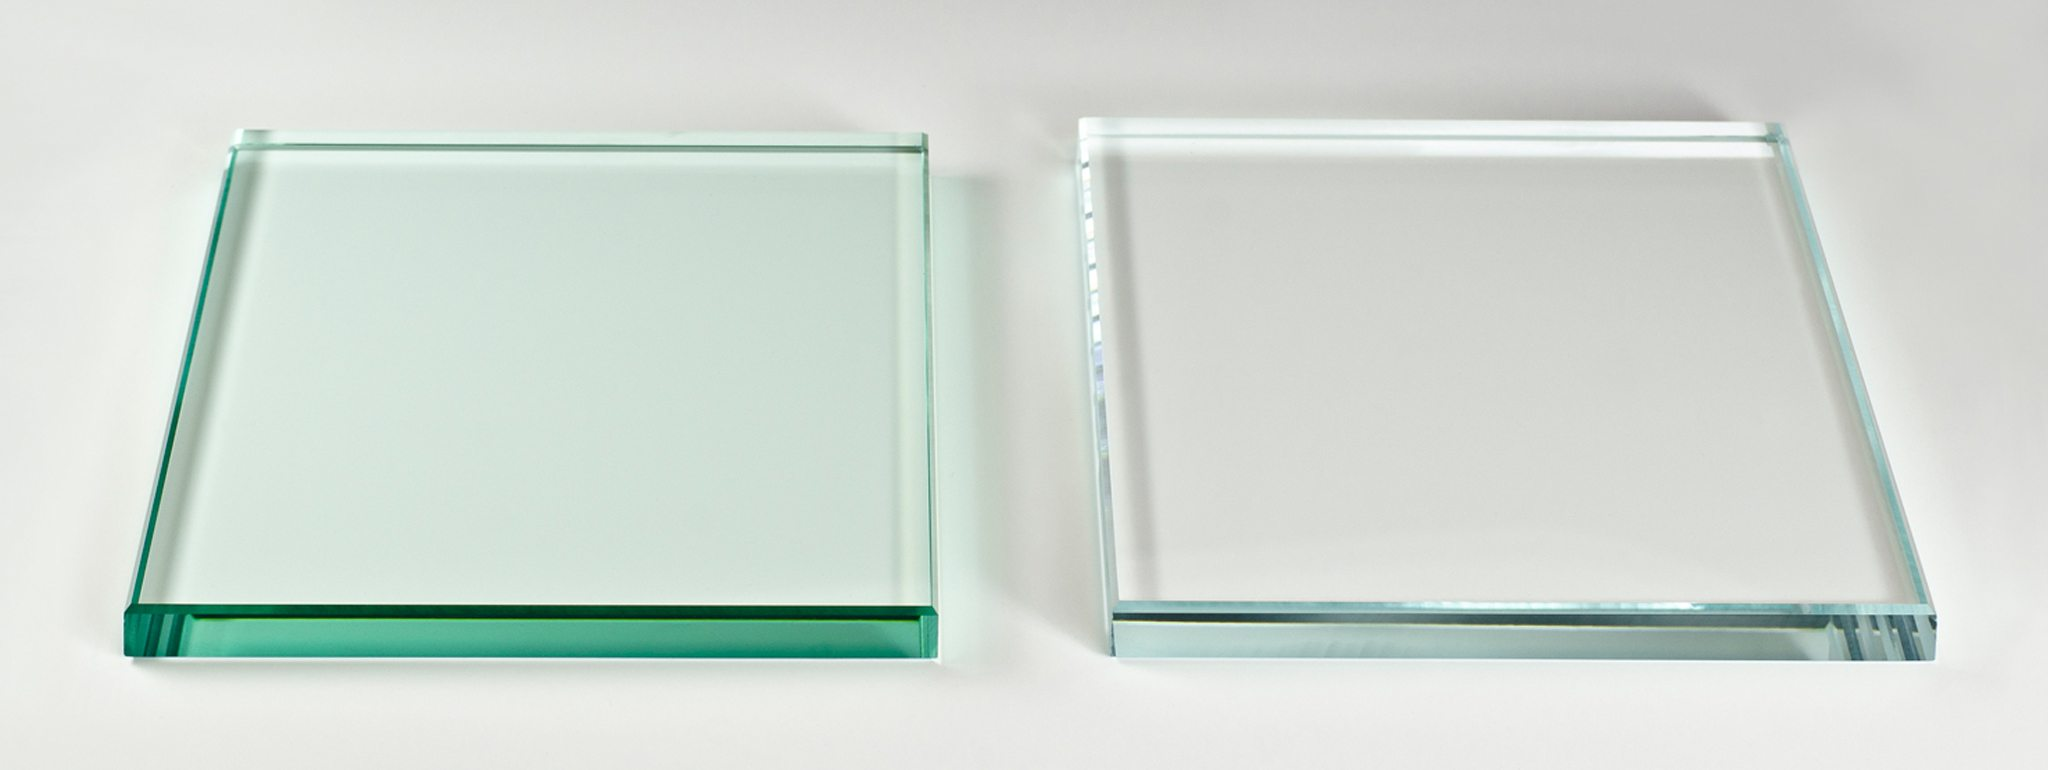 Clear-Low Iron Glass